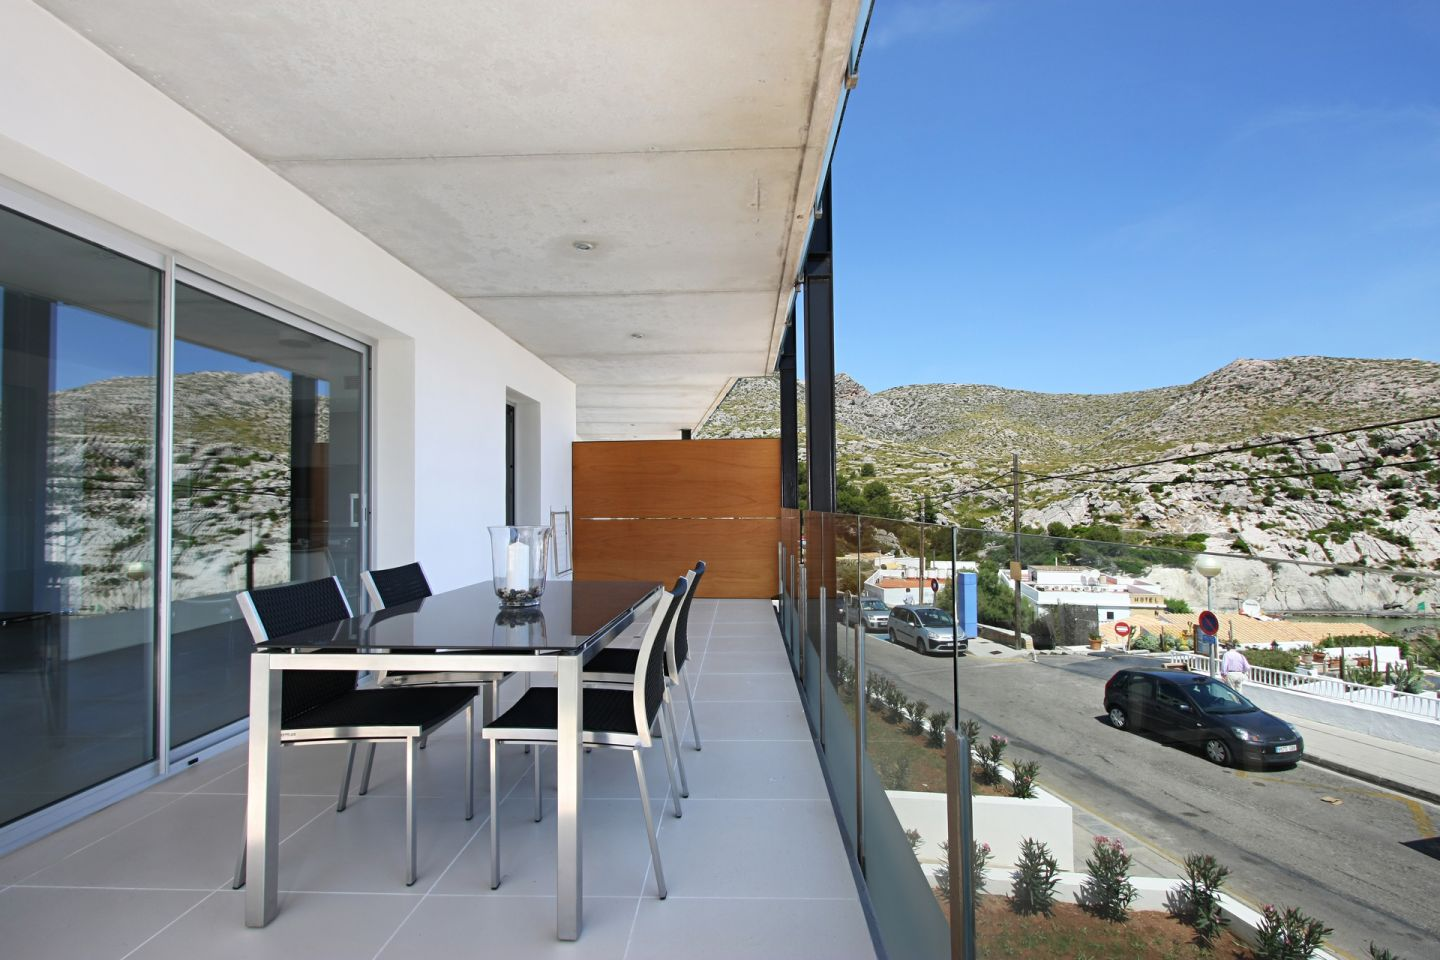 2 Bed Apartment for sale in Cala San Vicente 4